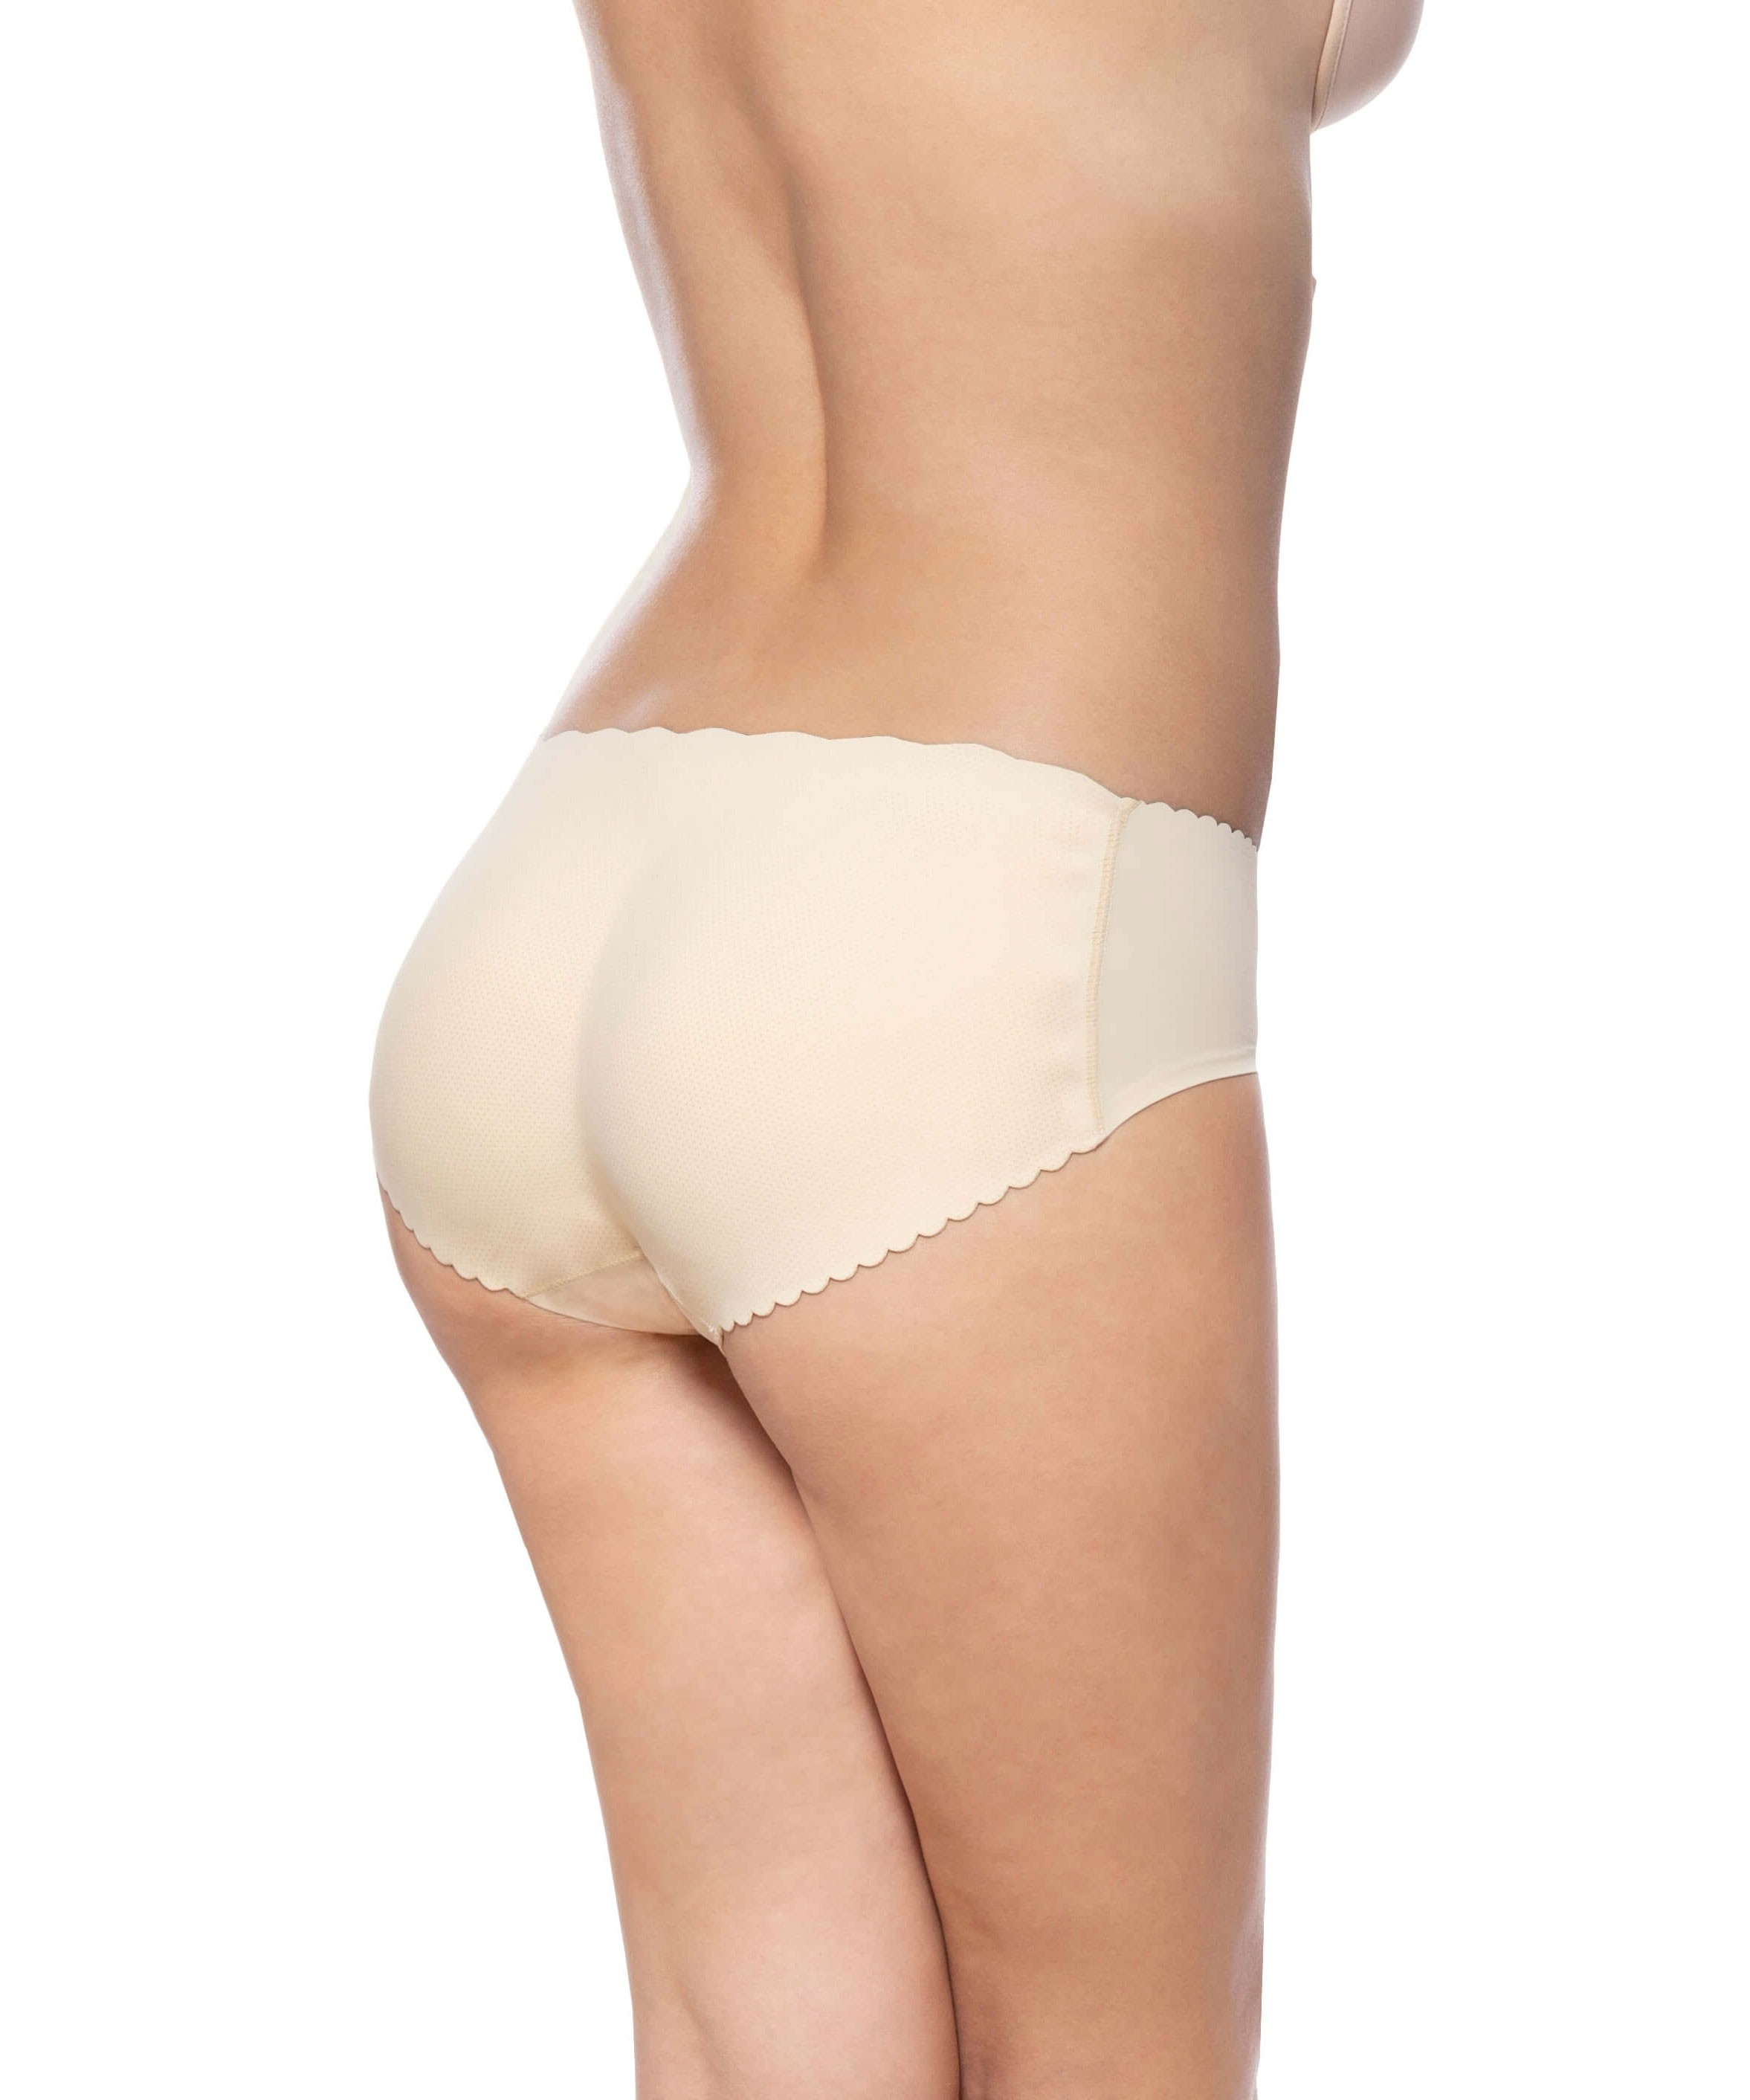 Culotte push-up Padded Panties